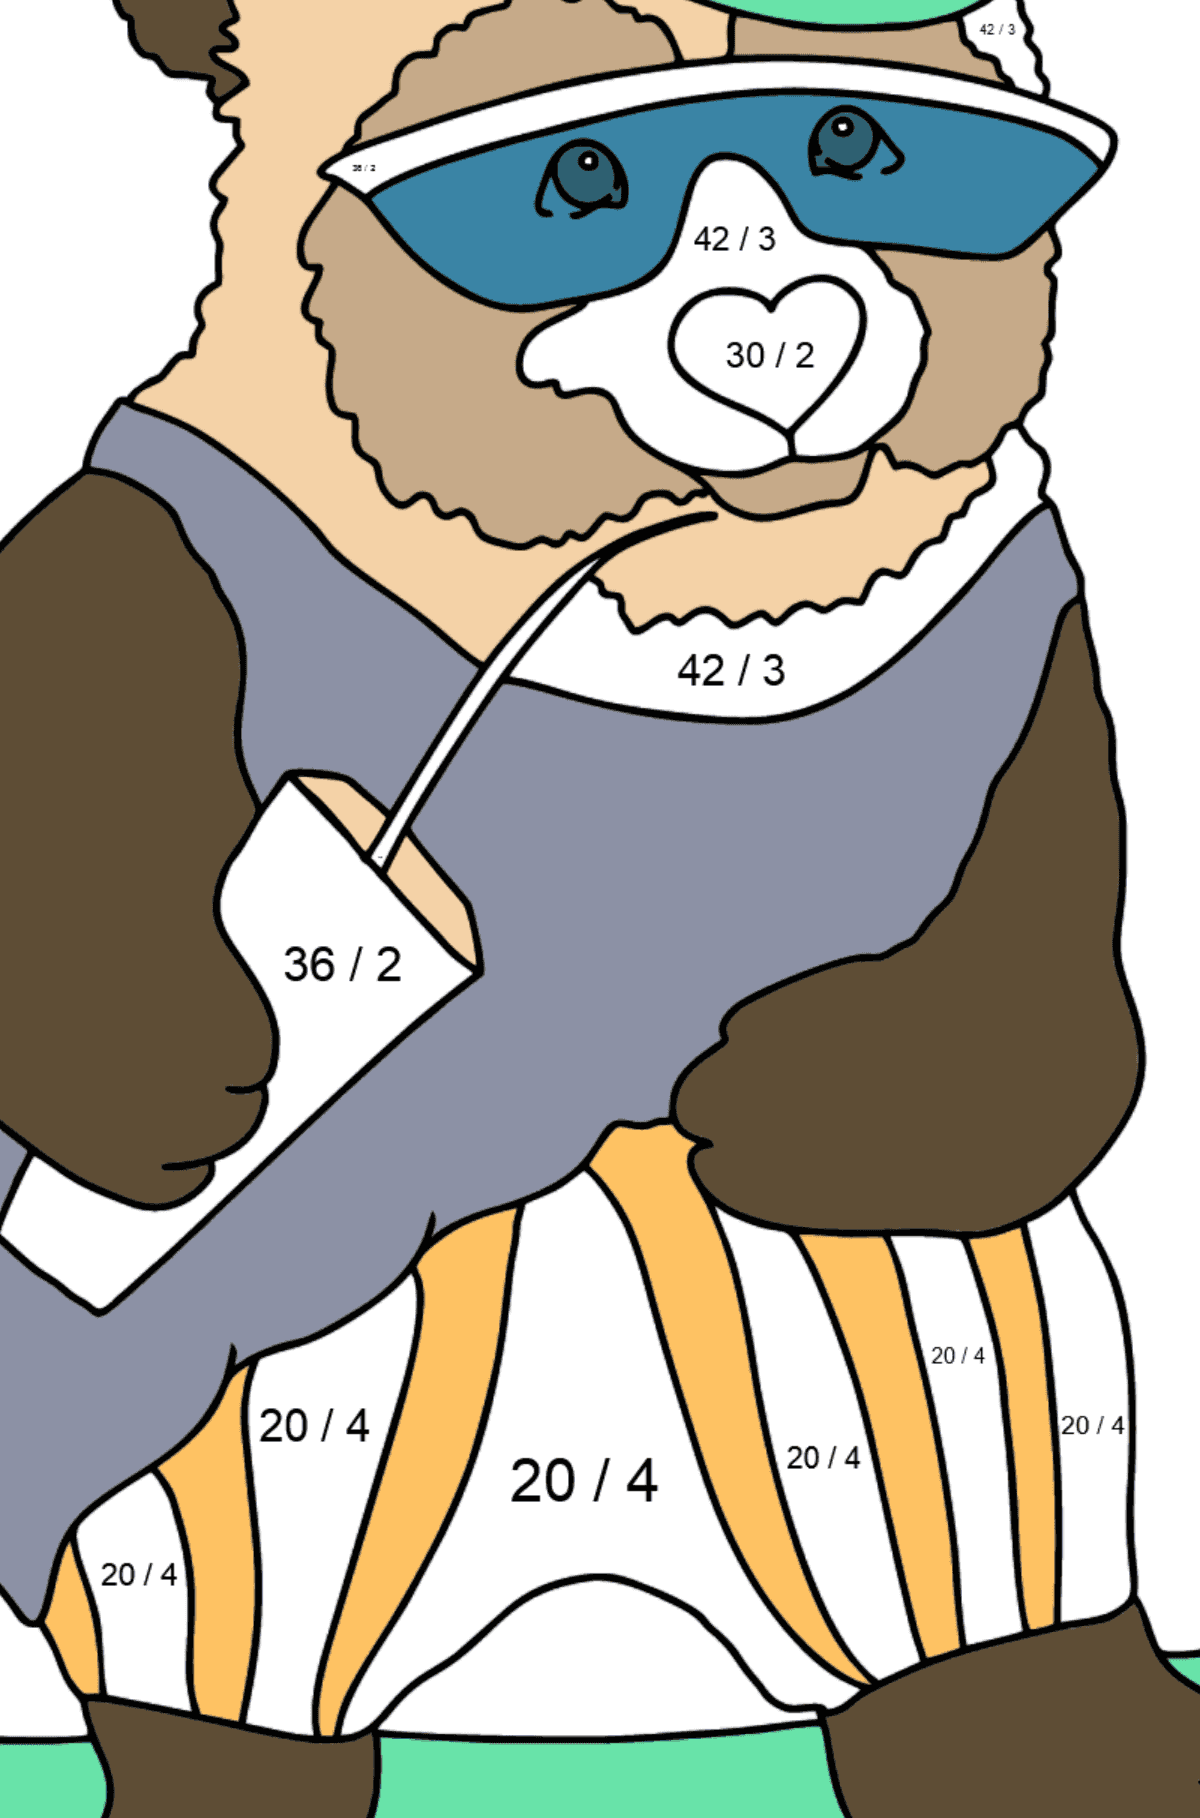 Coloring Page - A Panda in Sunglasses - Math Coloring - Division for Kids